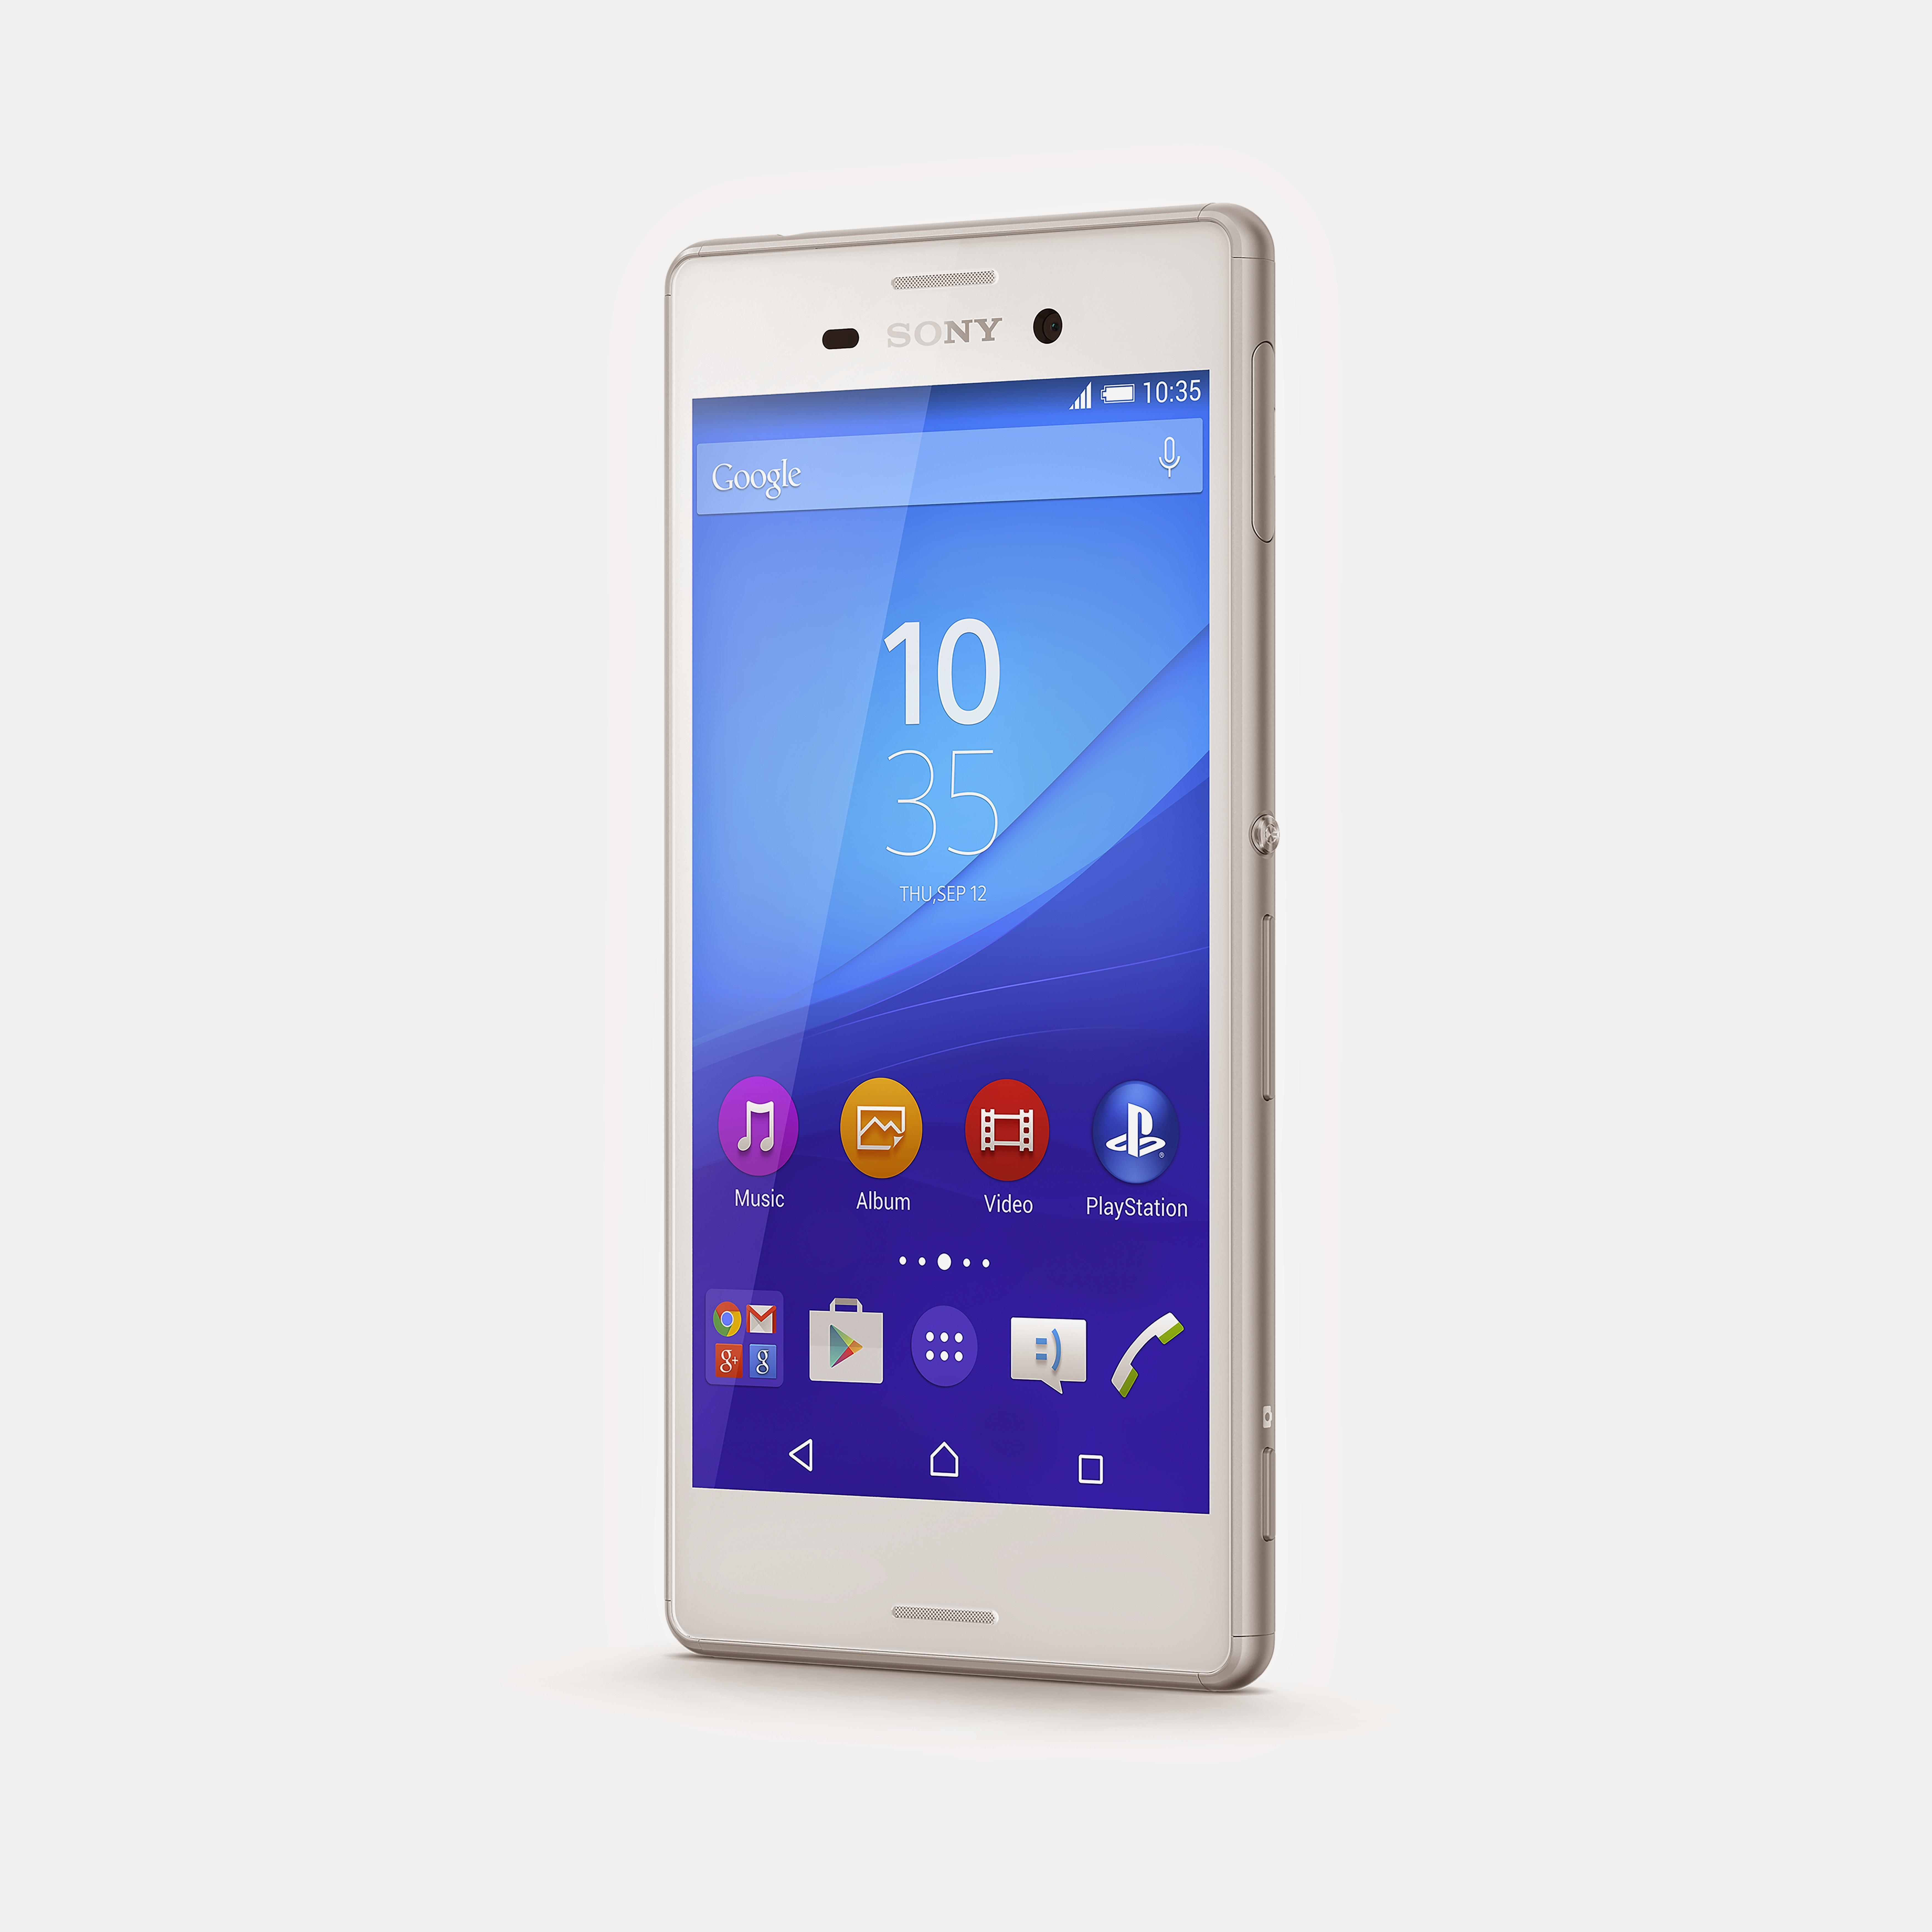 Sony unveils mid-range Xperia M4 smartphone and Z4 tablet